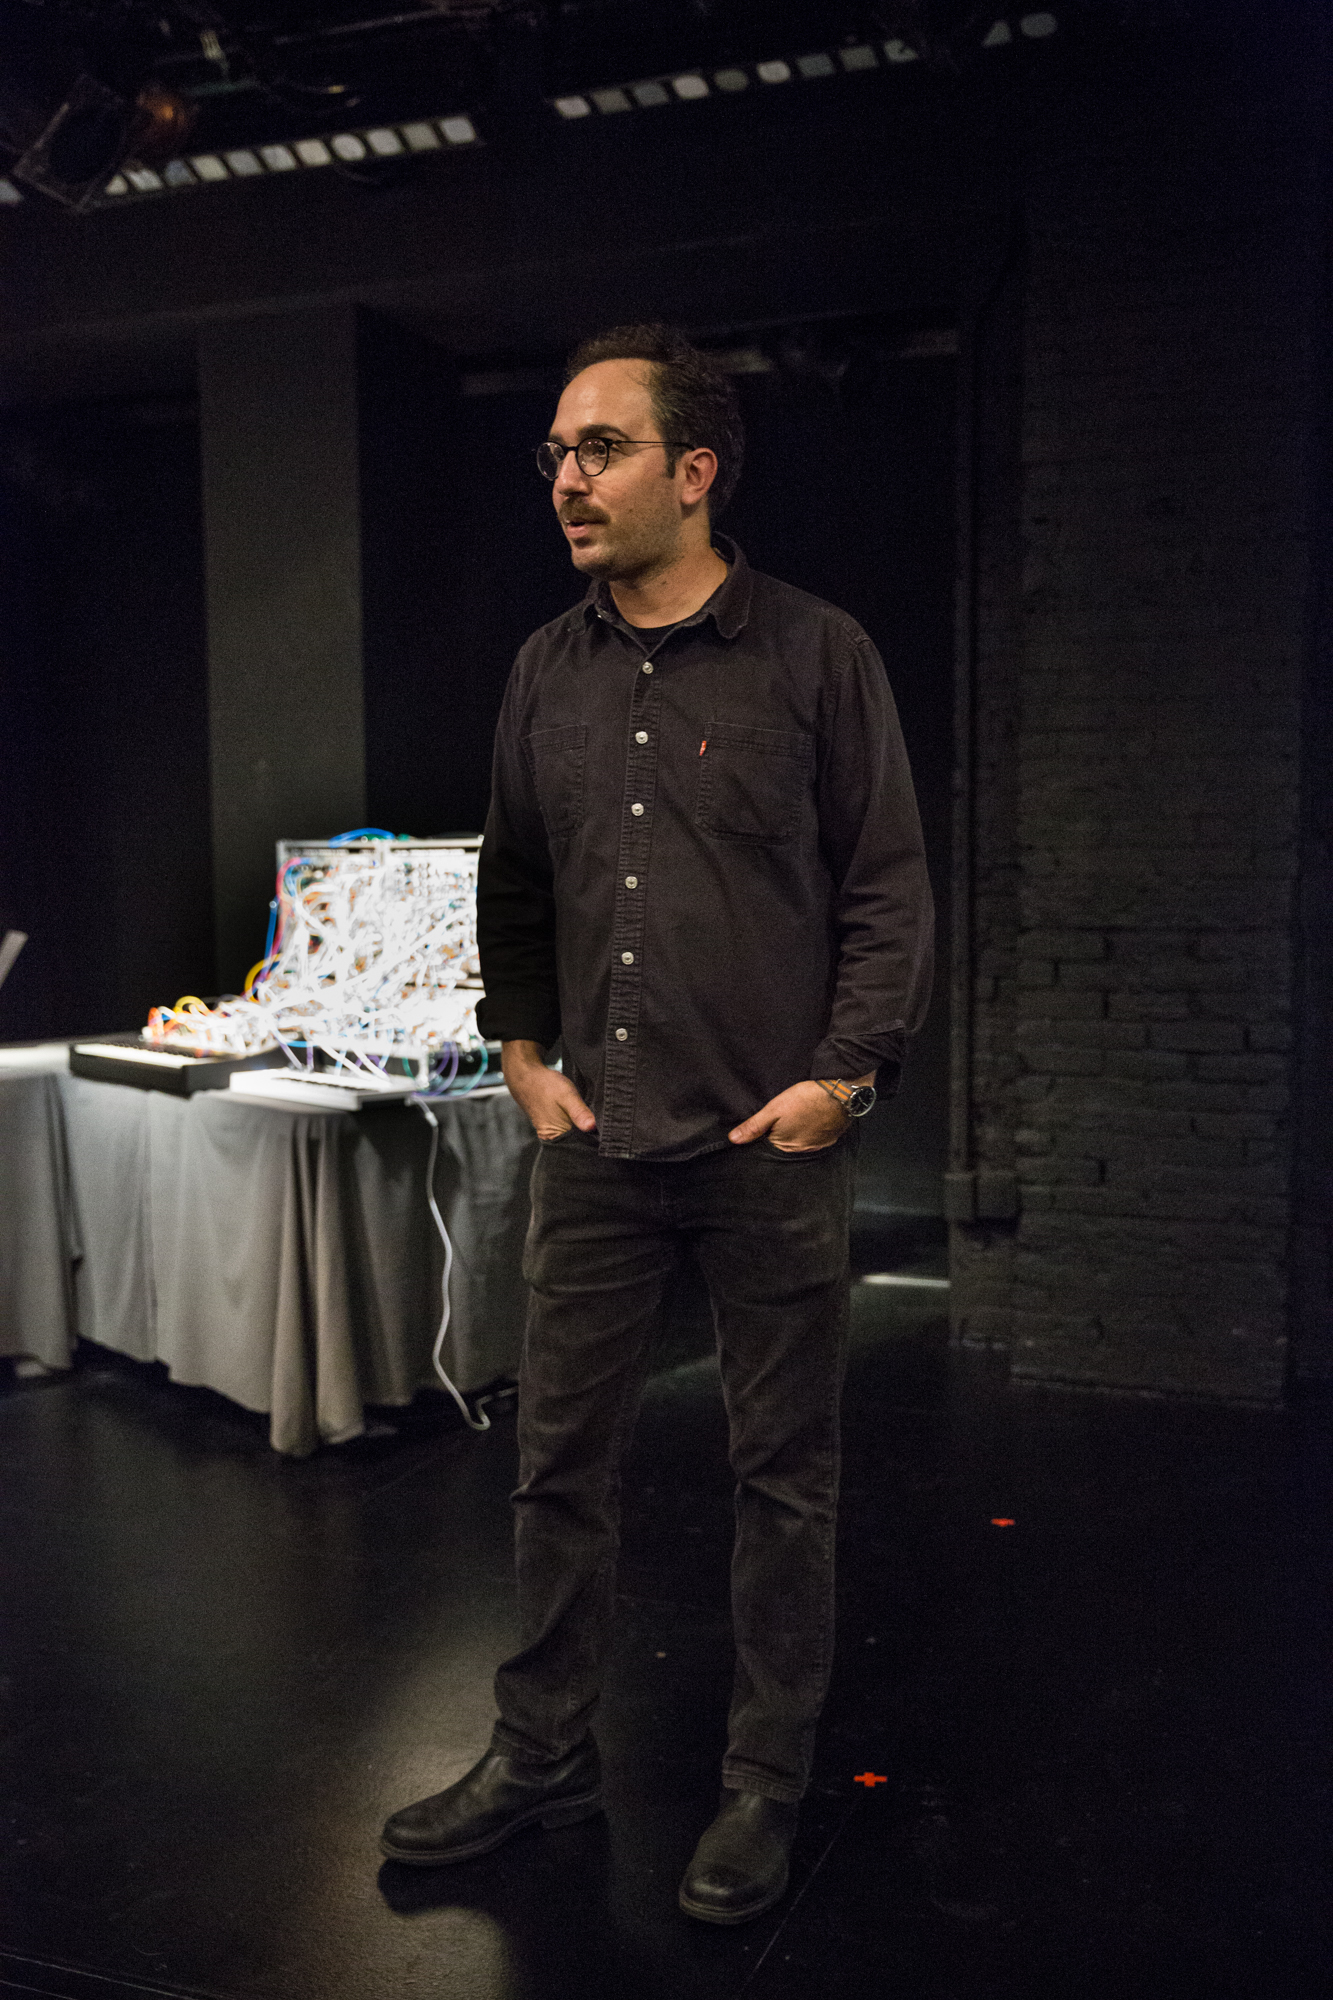 Aaron Siegel is one of the co-founders of Experiments in Opera